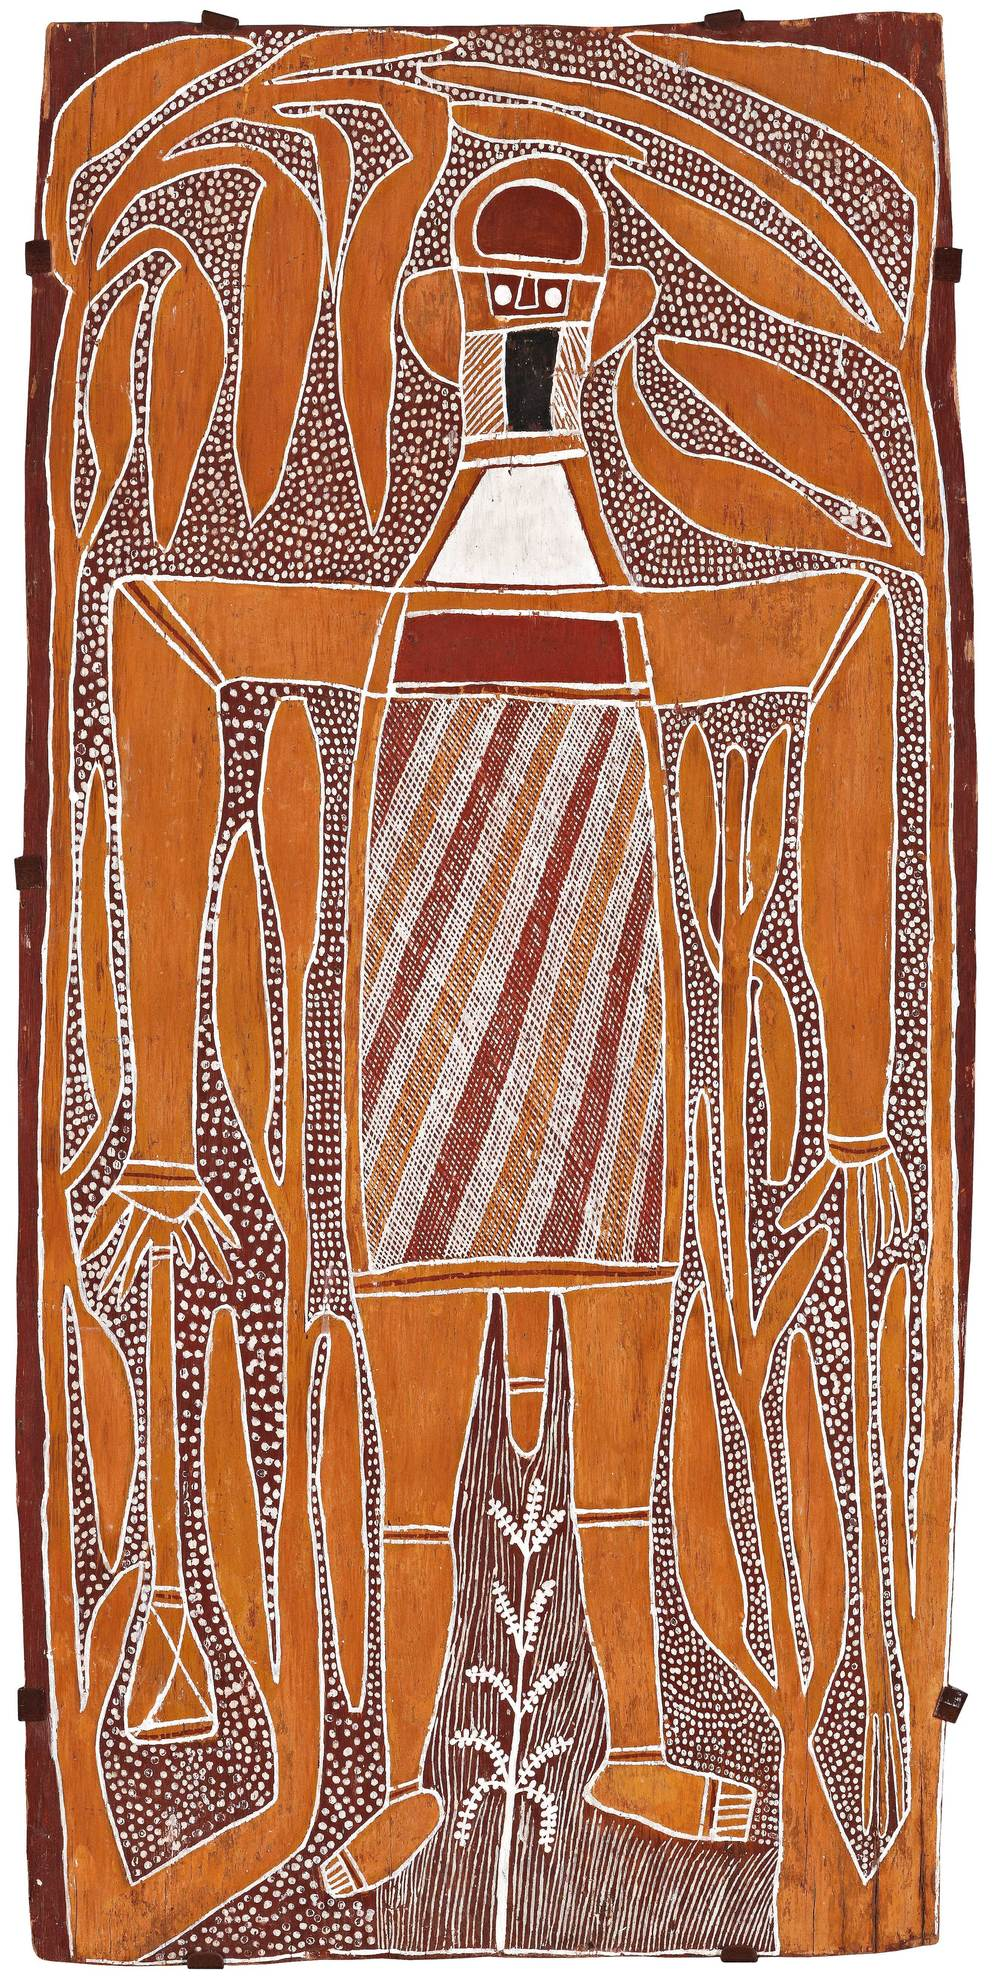 DAVID MALANGI, 1927–1999 Gurrmirringu the Mighty Hunter, 1967